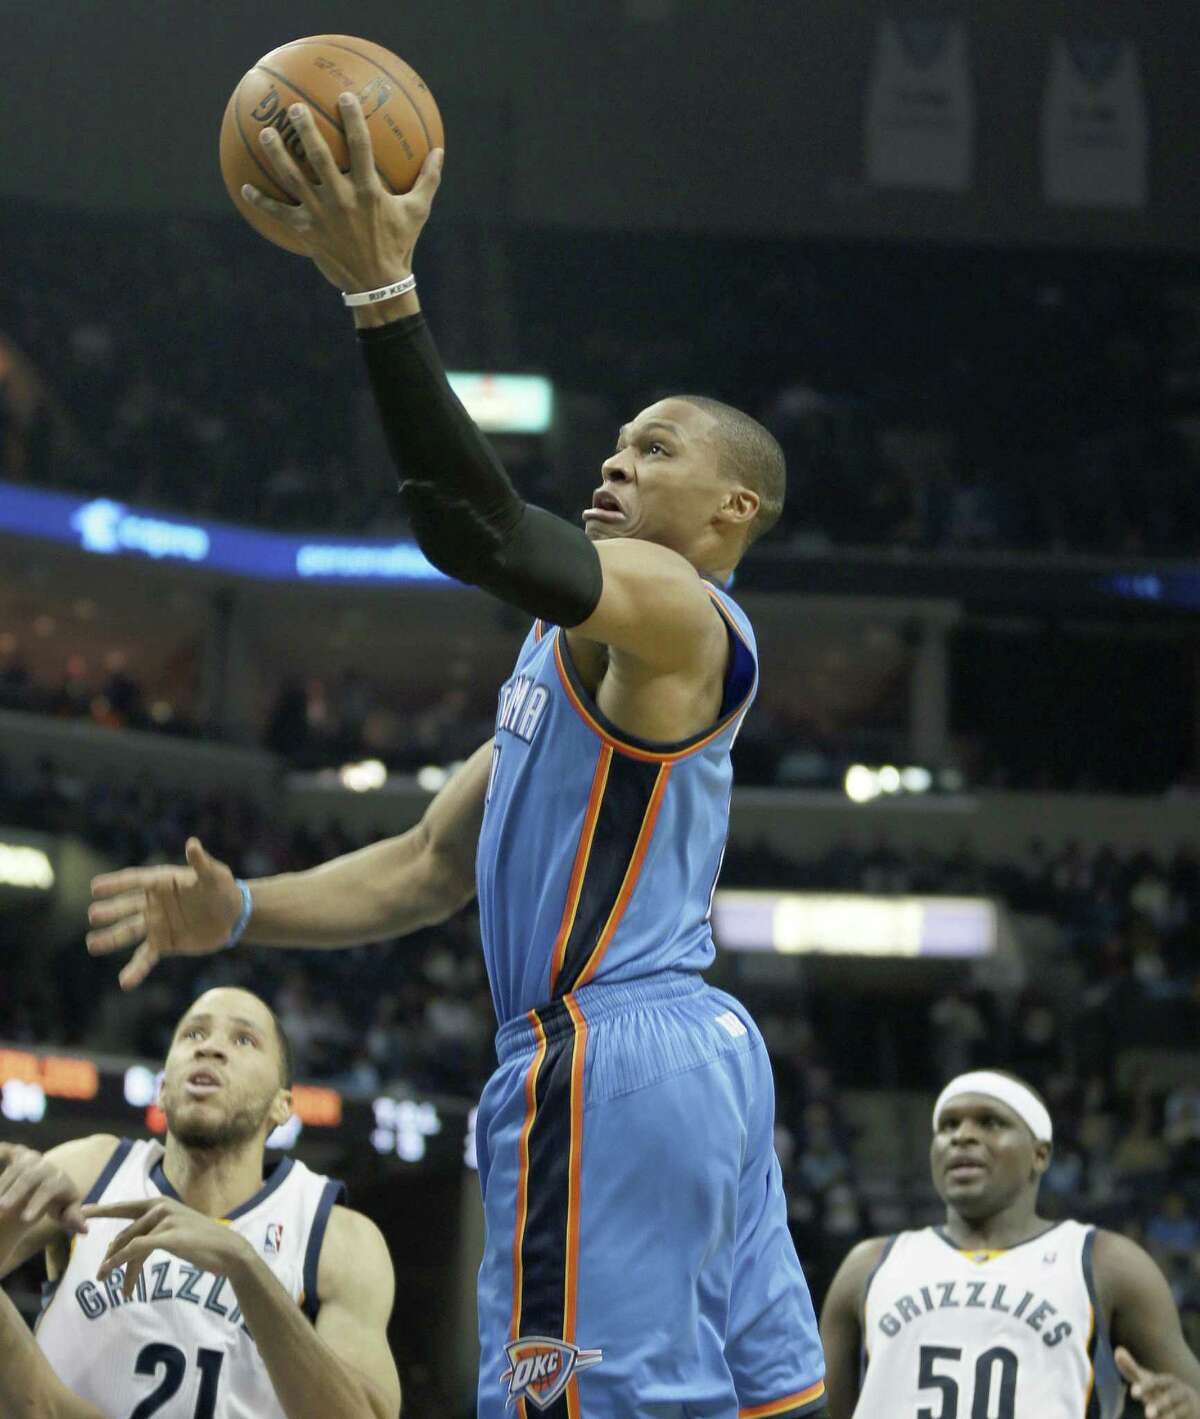 Oklahoma City's Russell Westbrook meets little resistance on his way to the basket as Memphis' Tayshaun Prince (left) and Zach Randolph look on.